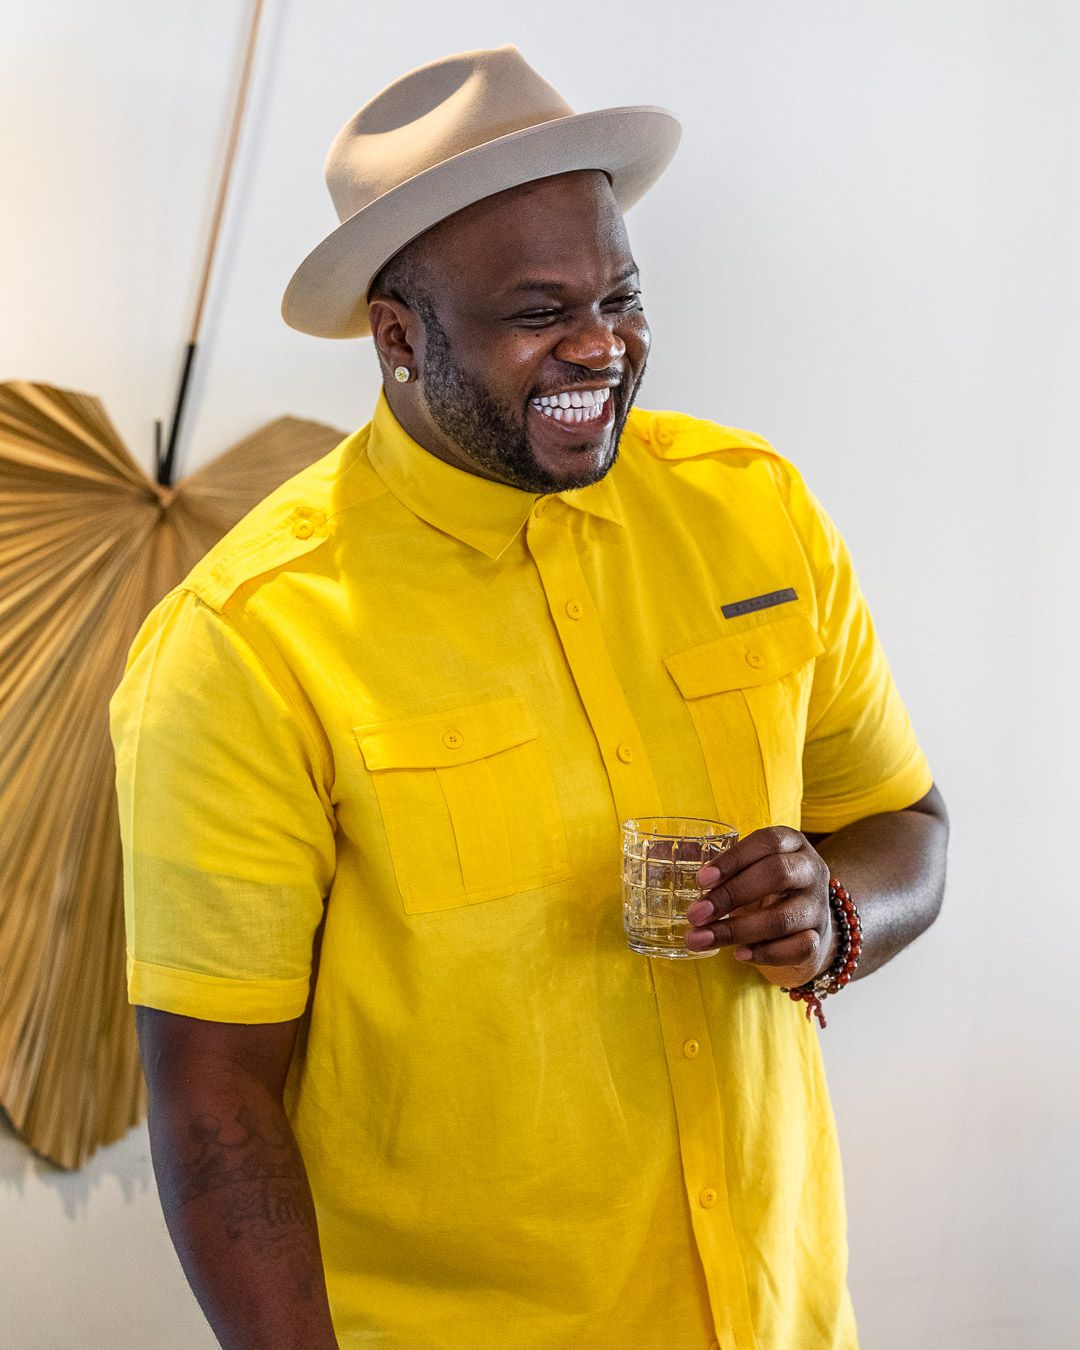 A black man wearing a bright yellow button down shirt and a tan hat while holding a glass.